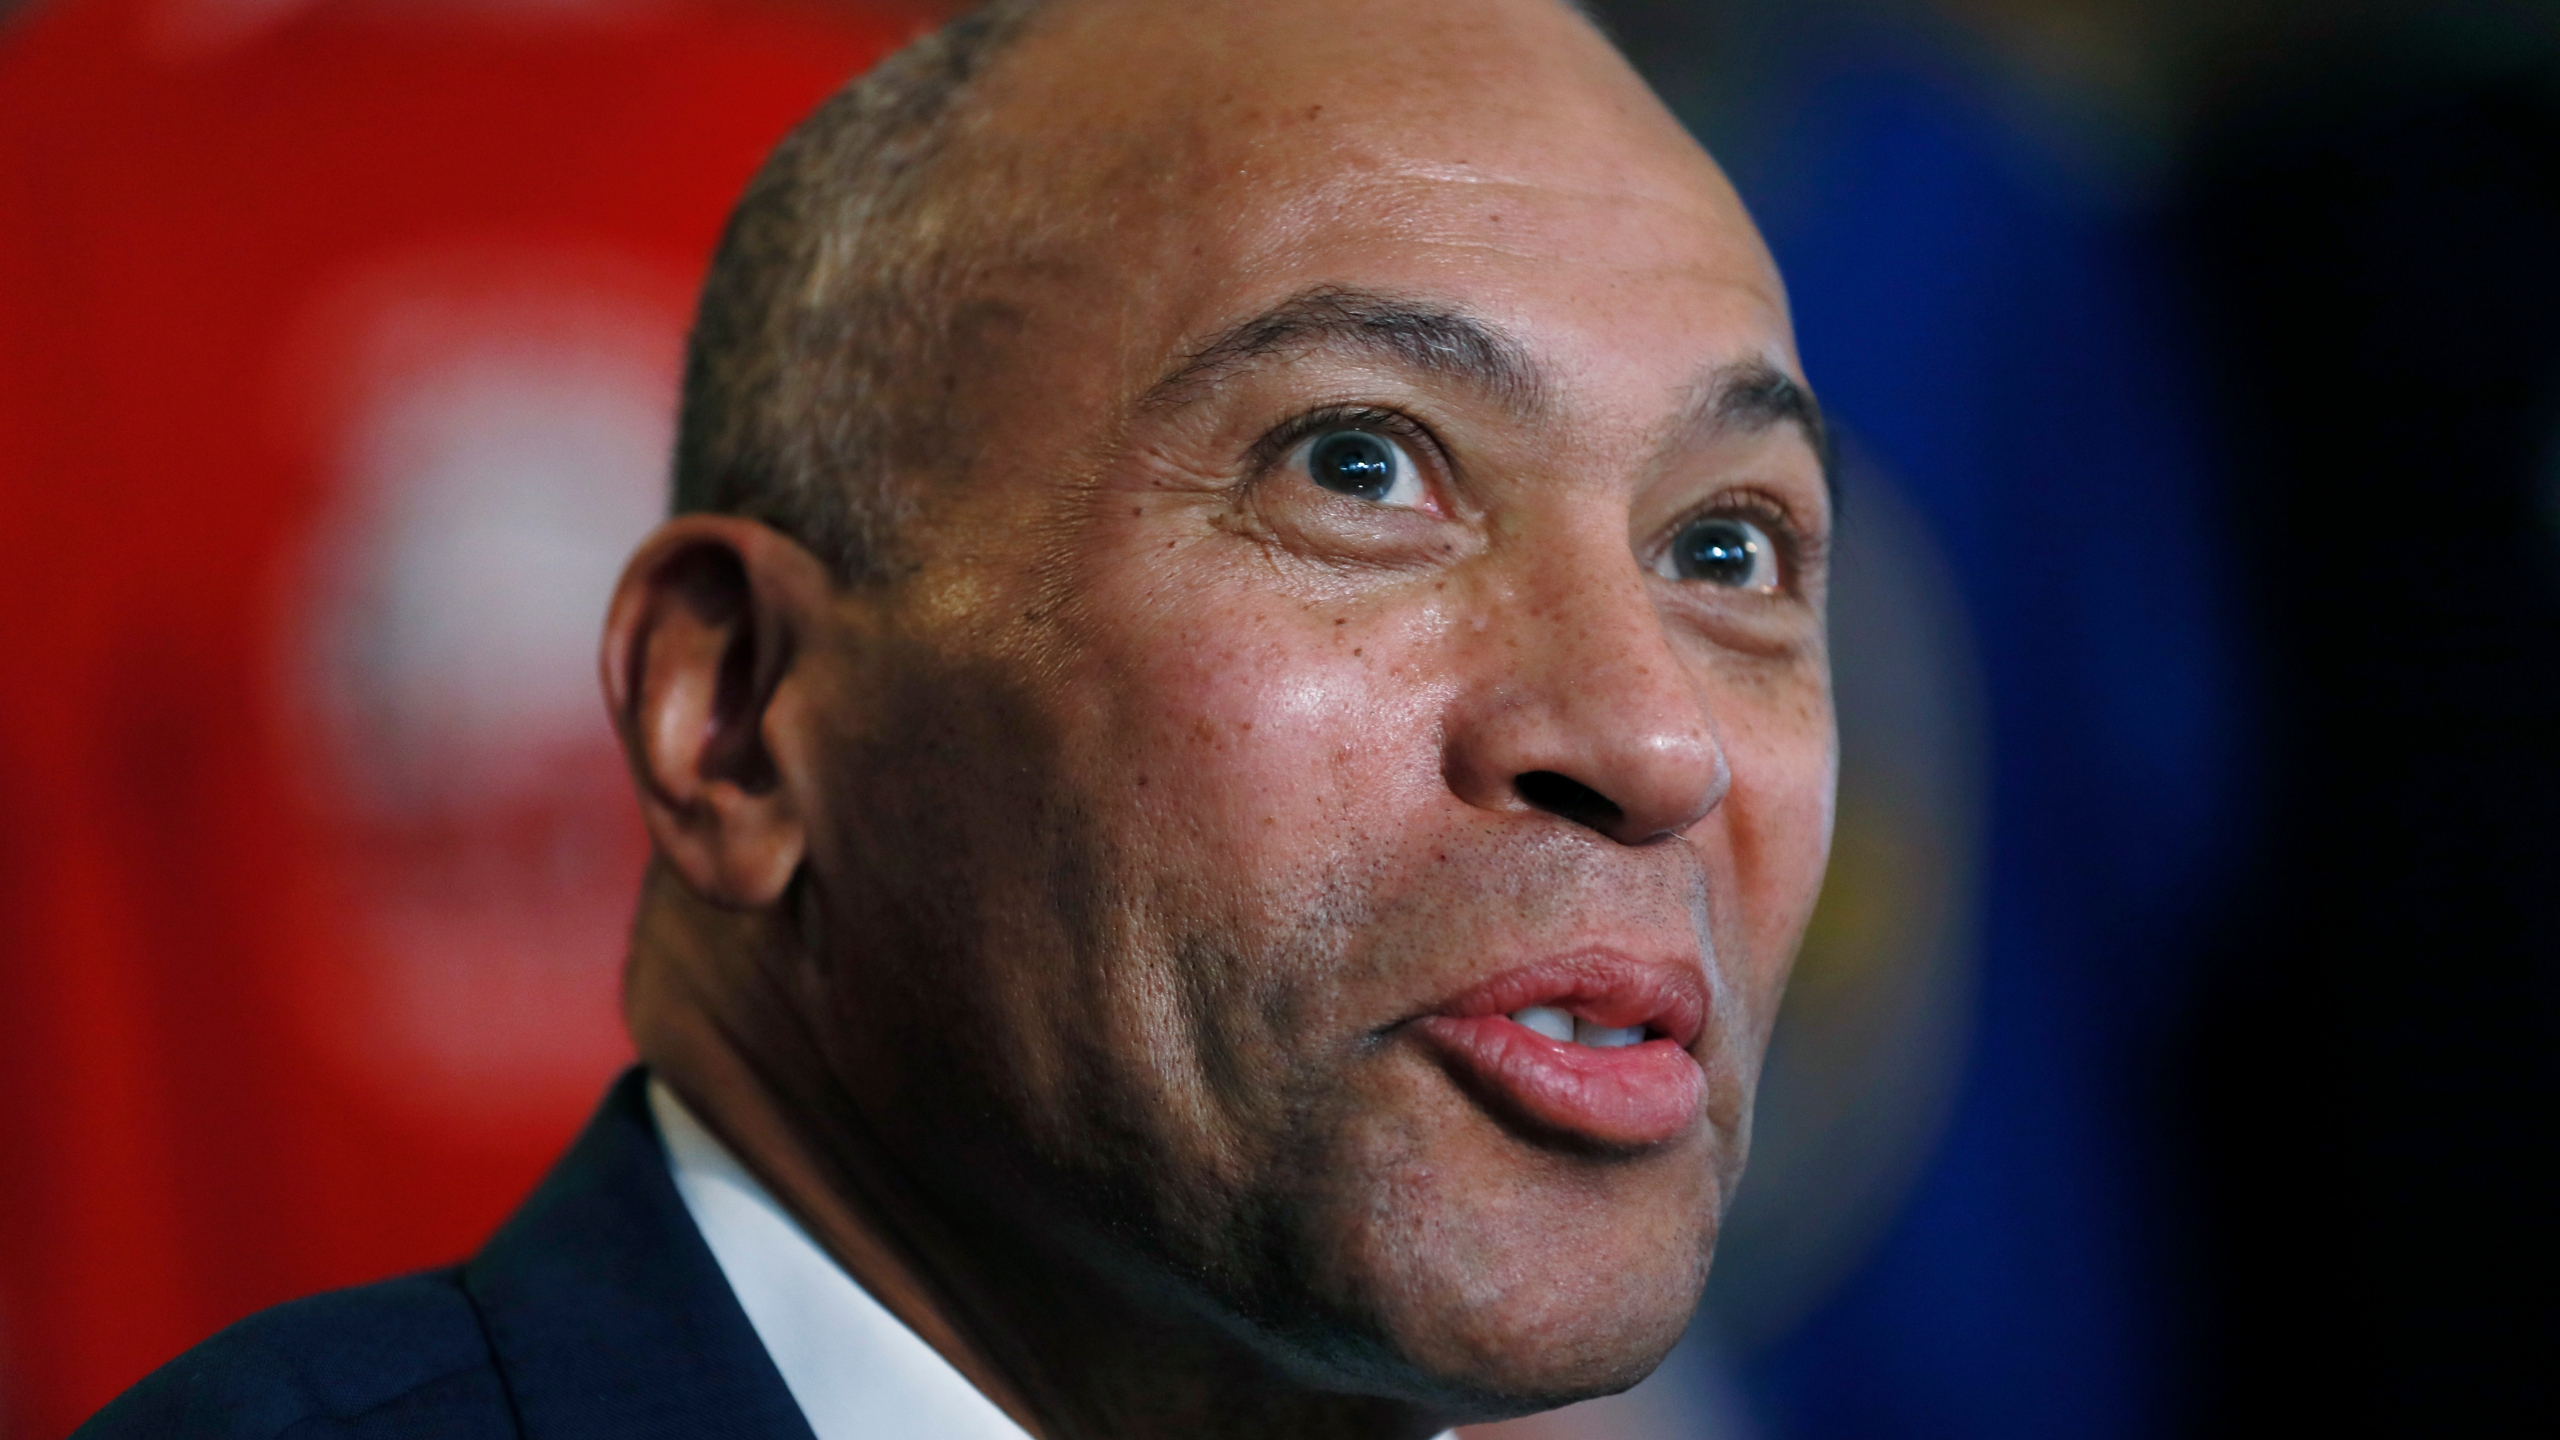 FILE - In this Nov. 18, 2019 file photo, Democratic presidential candidate former Massachusetts Gov. Deval Patrick speaks to local residents during a stop at the Sykora Bakery, in Cedar Rapids, Iowa. Patrick has ended his campaign for president after his late bid failed to gain traction in the race. Patrick was the last remaining African American candidate in a Democratic presidential field once defined by its diversity.(AP Photo/Charlie Neibergall)